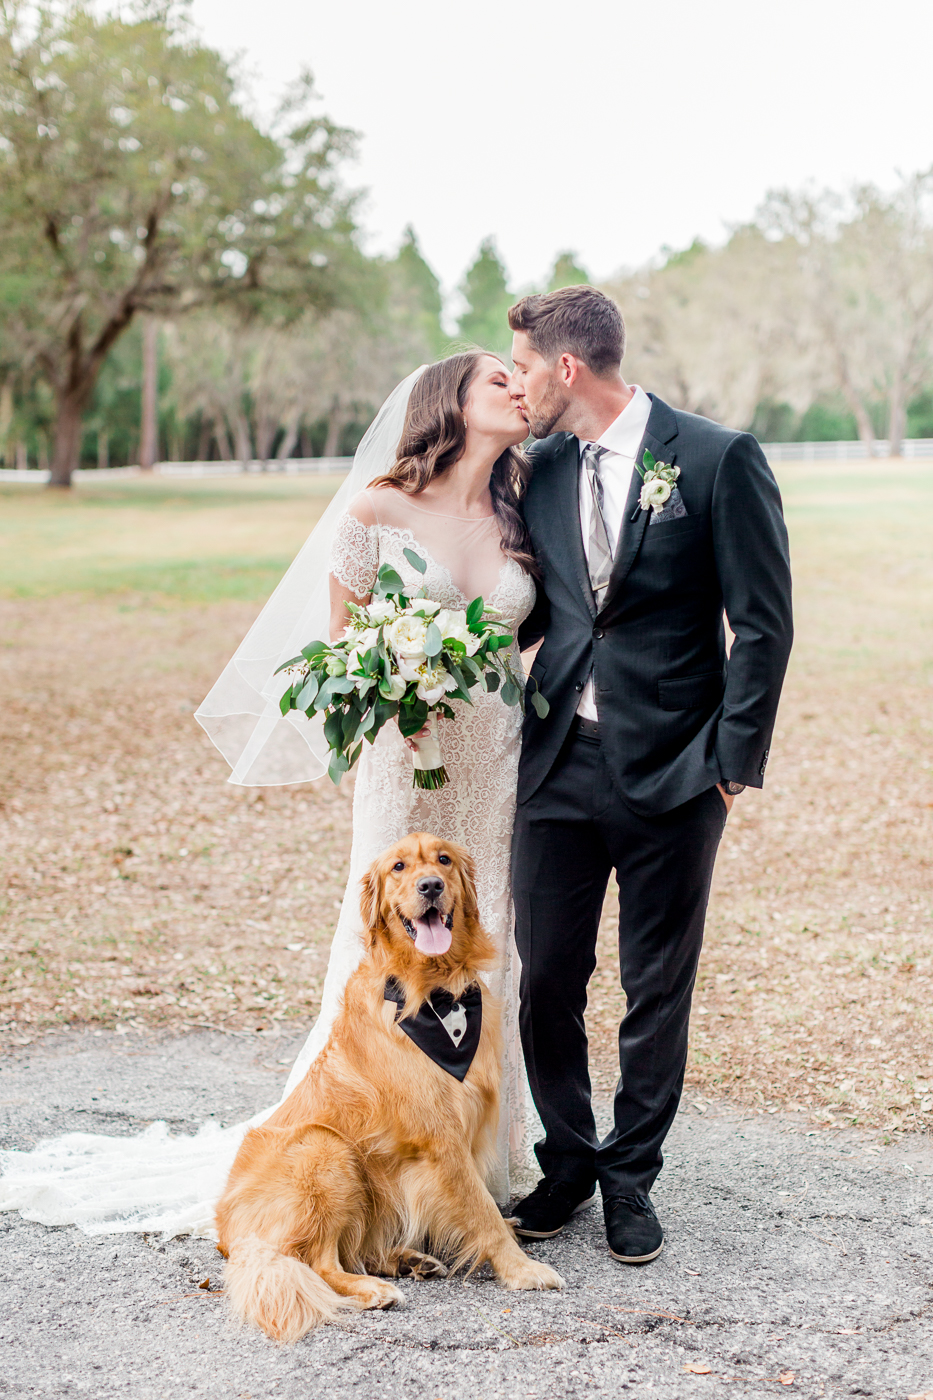 Kara + Ricky - Dade City, Florida